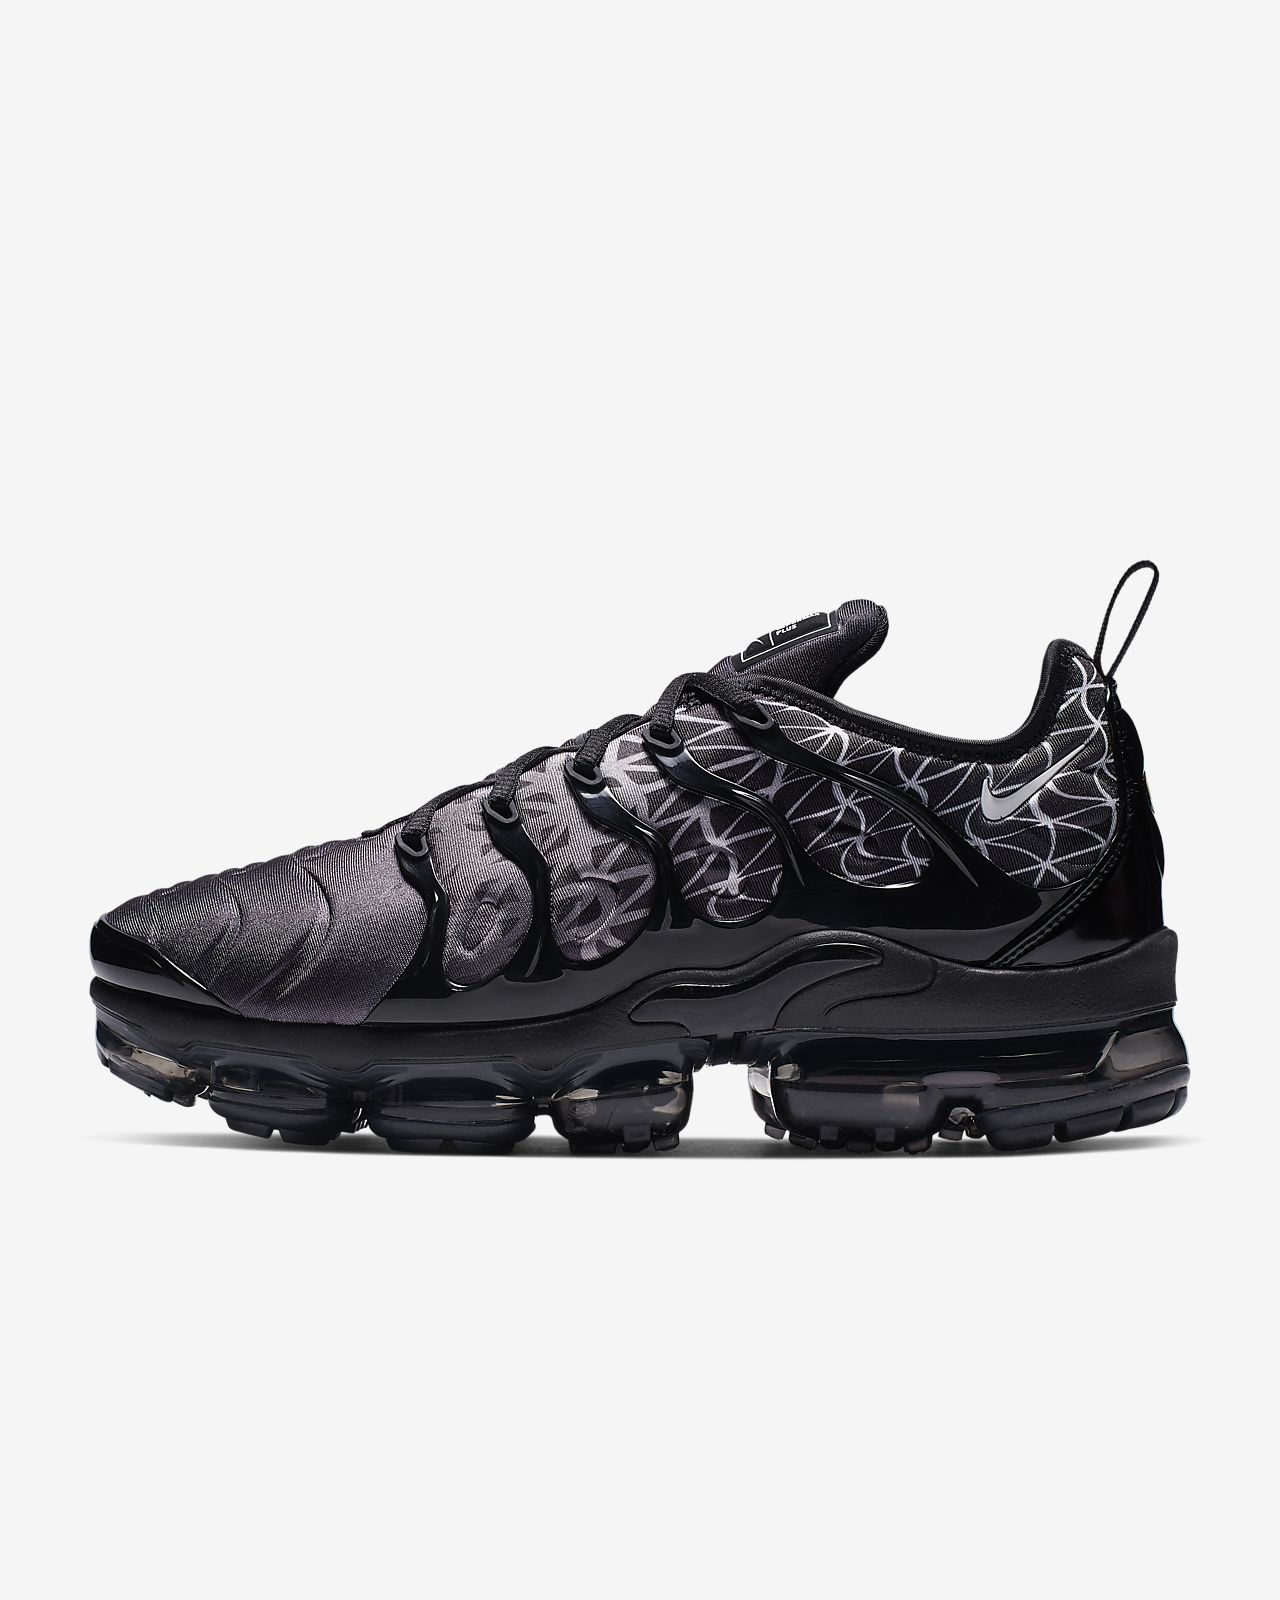 sneakers for cheap 91c14 288c8 ... Chaussure Nike Air VaporMax Plus pour Homme